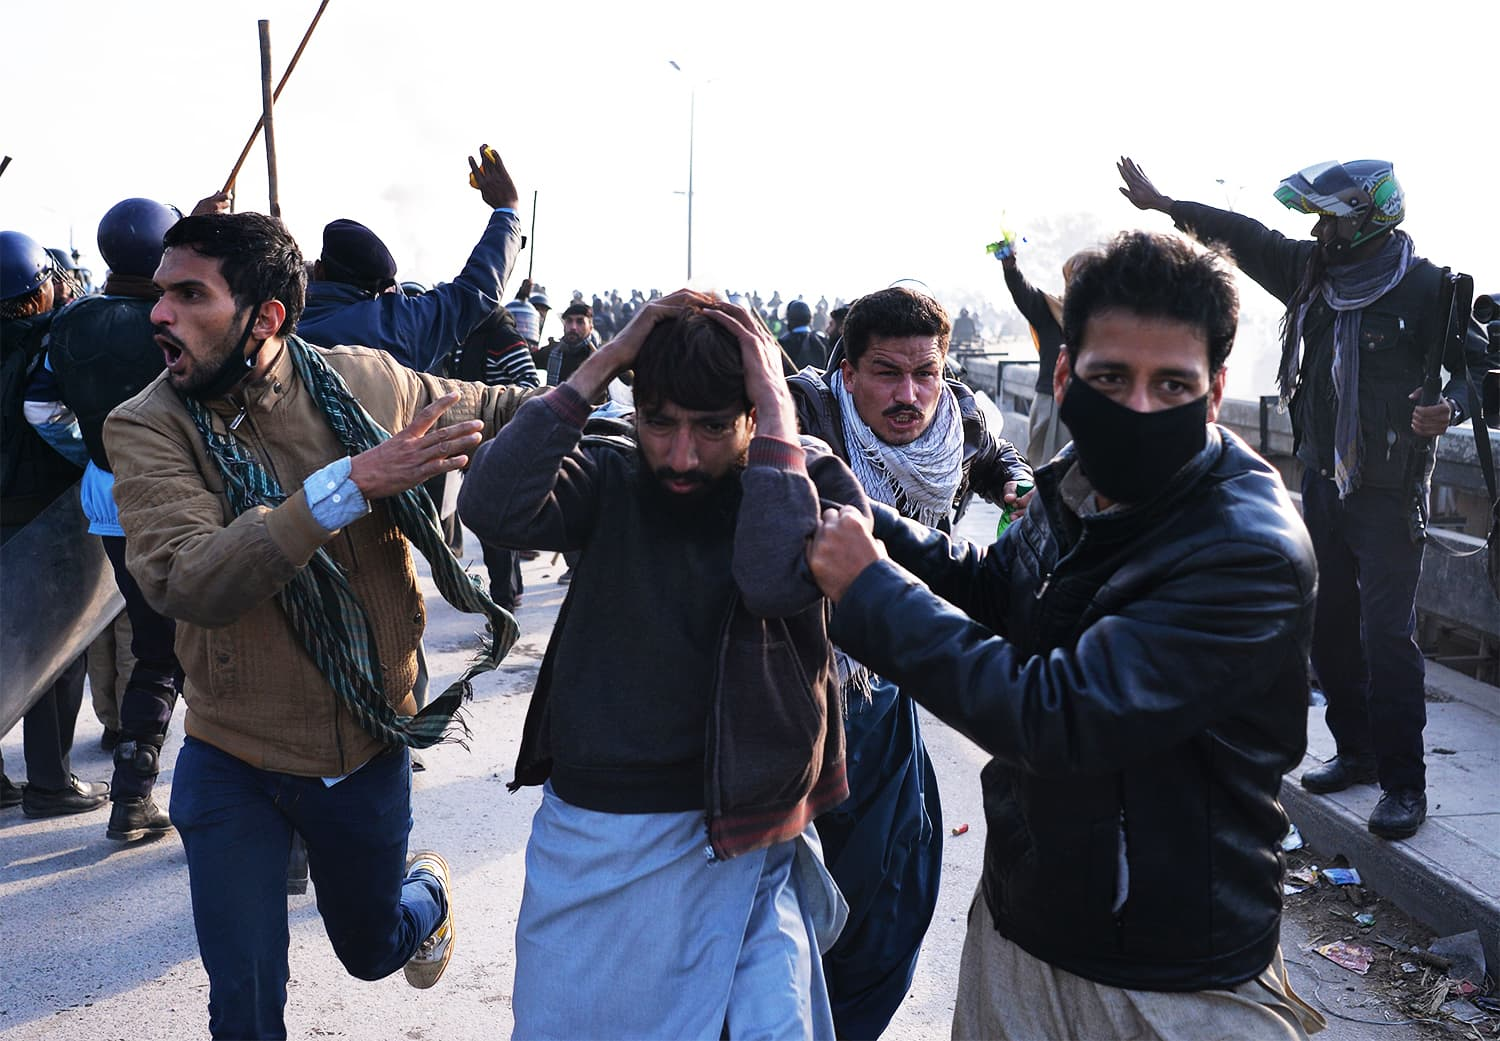 Plainclothes policemen arrest an injured TLY activist (C) during a clash in Islamabad. ─ AFP